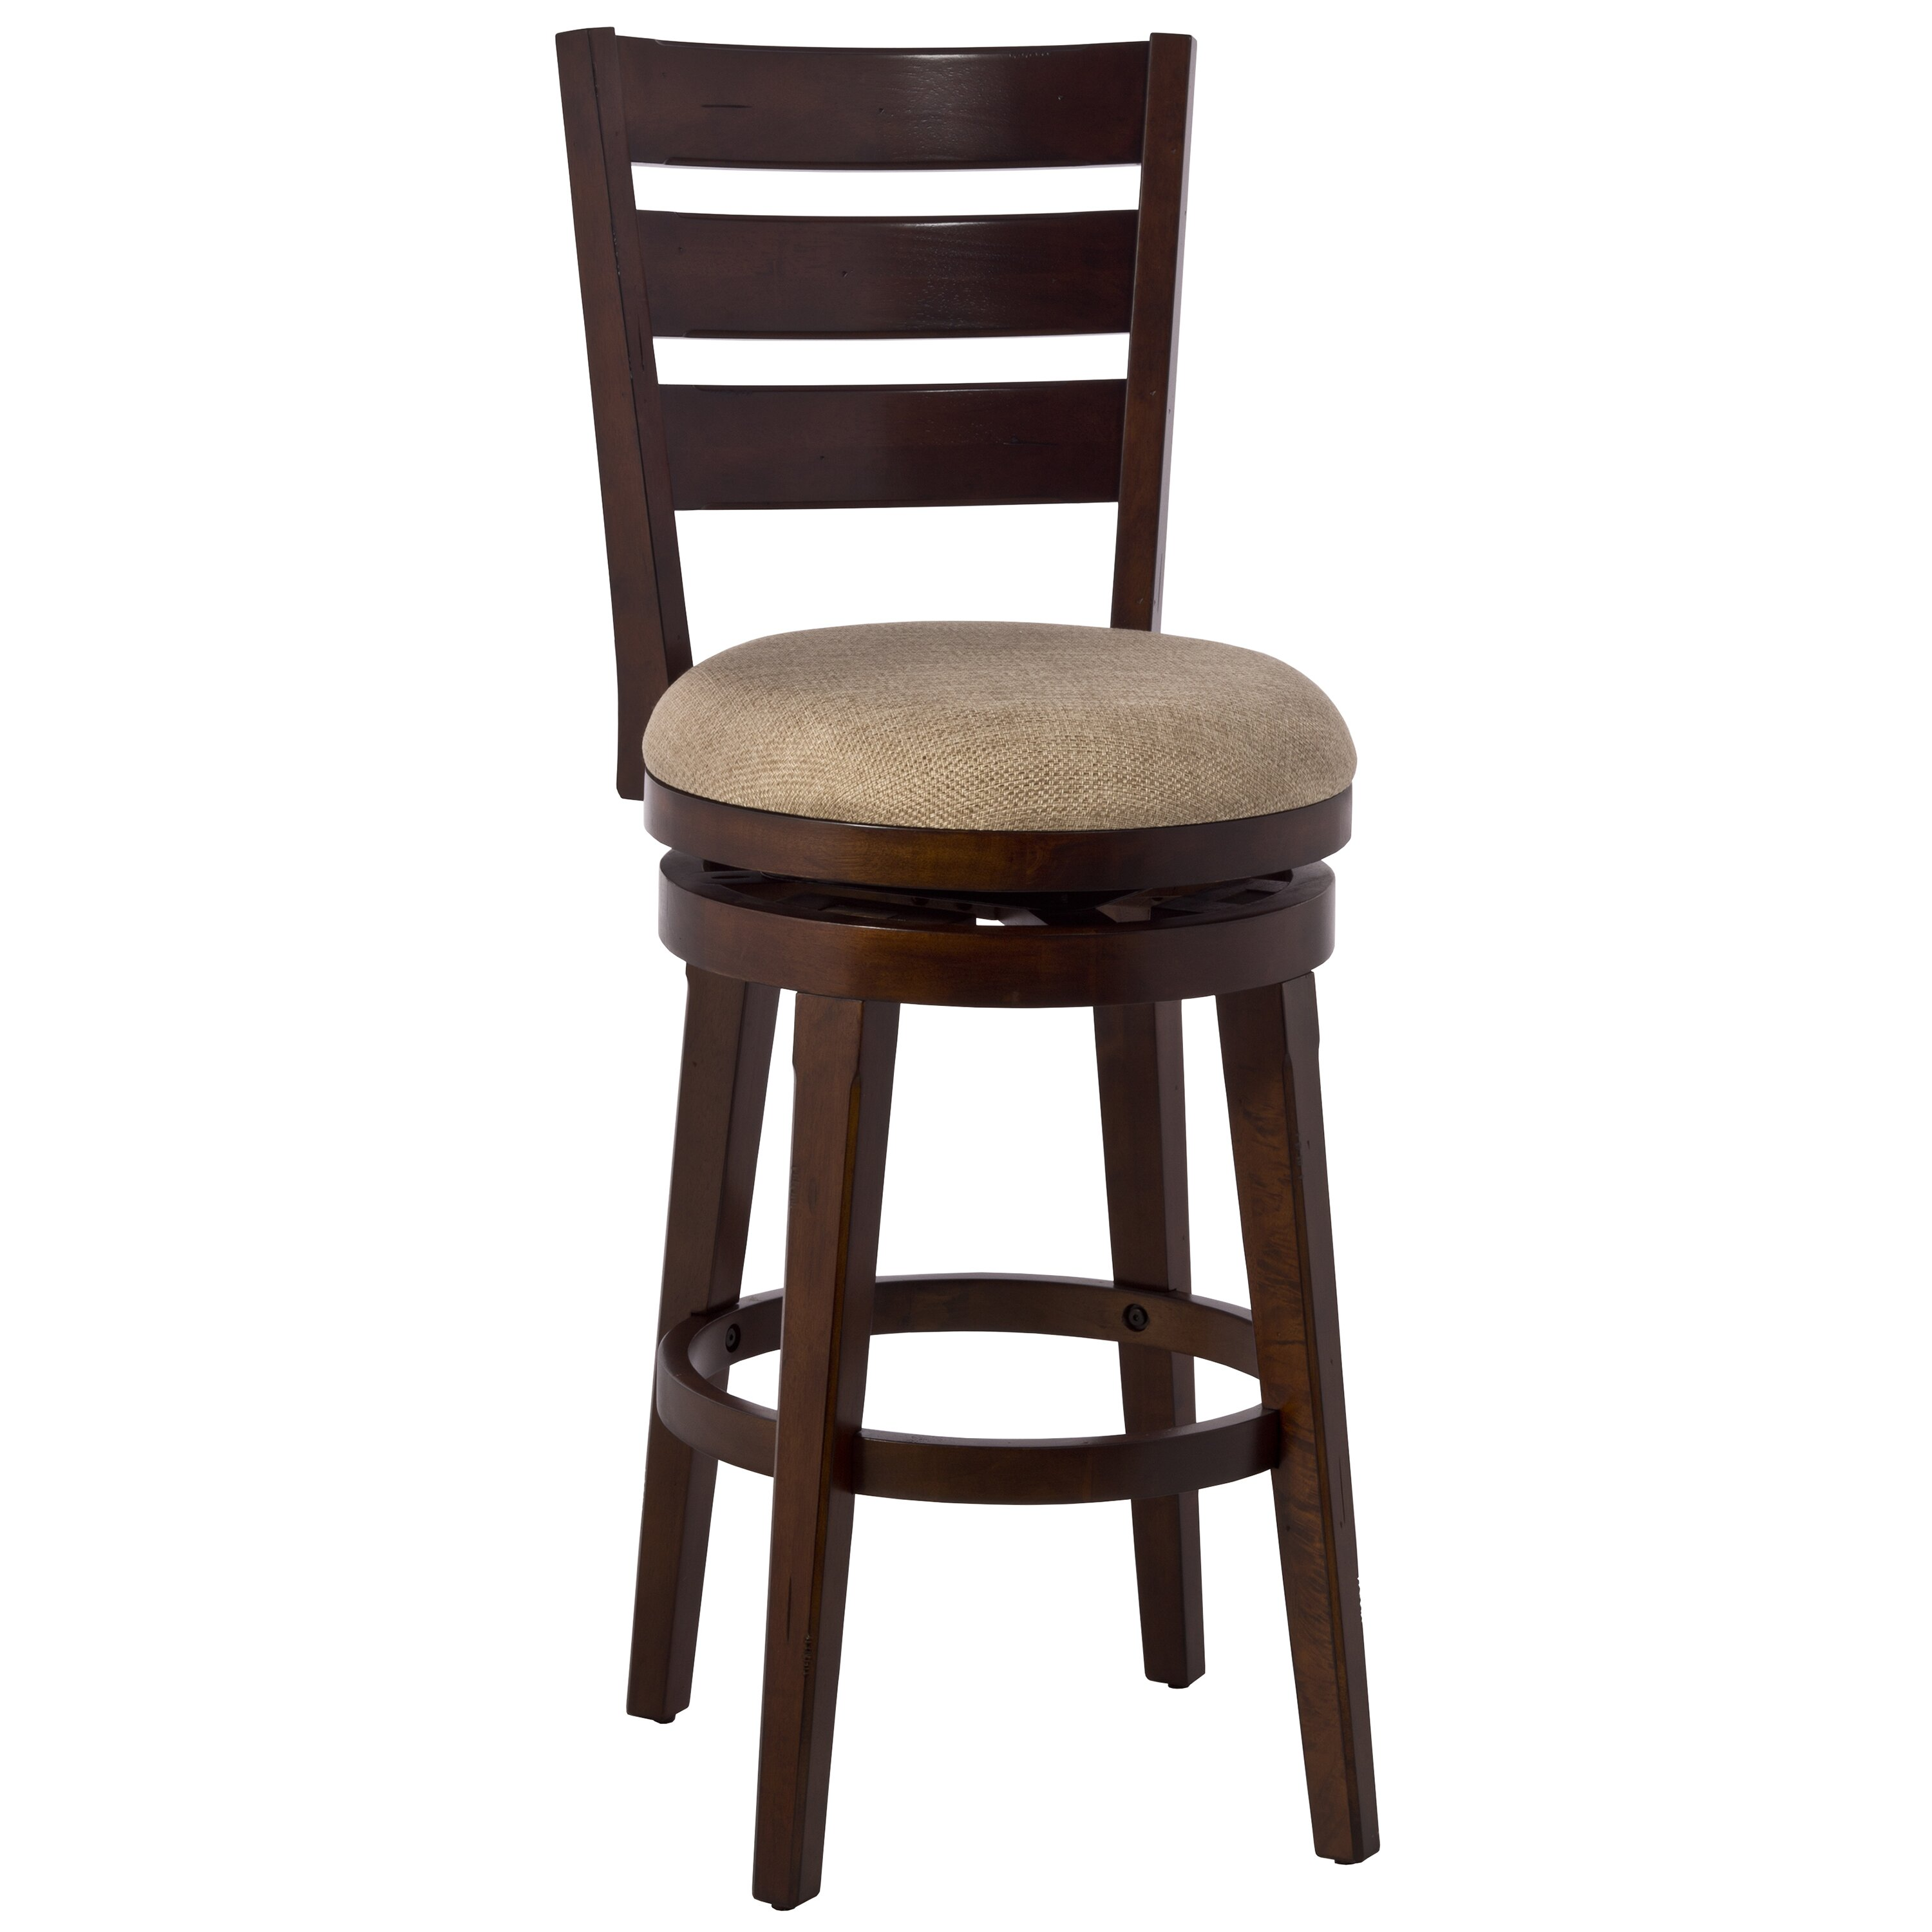 Hillsdale 26 swivel bar stool reviews wayfair for Furniture 2 day shipping